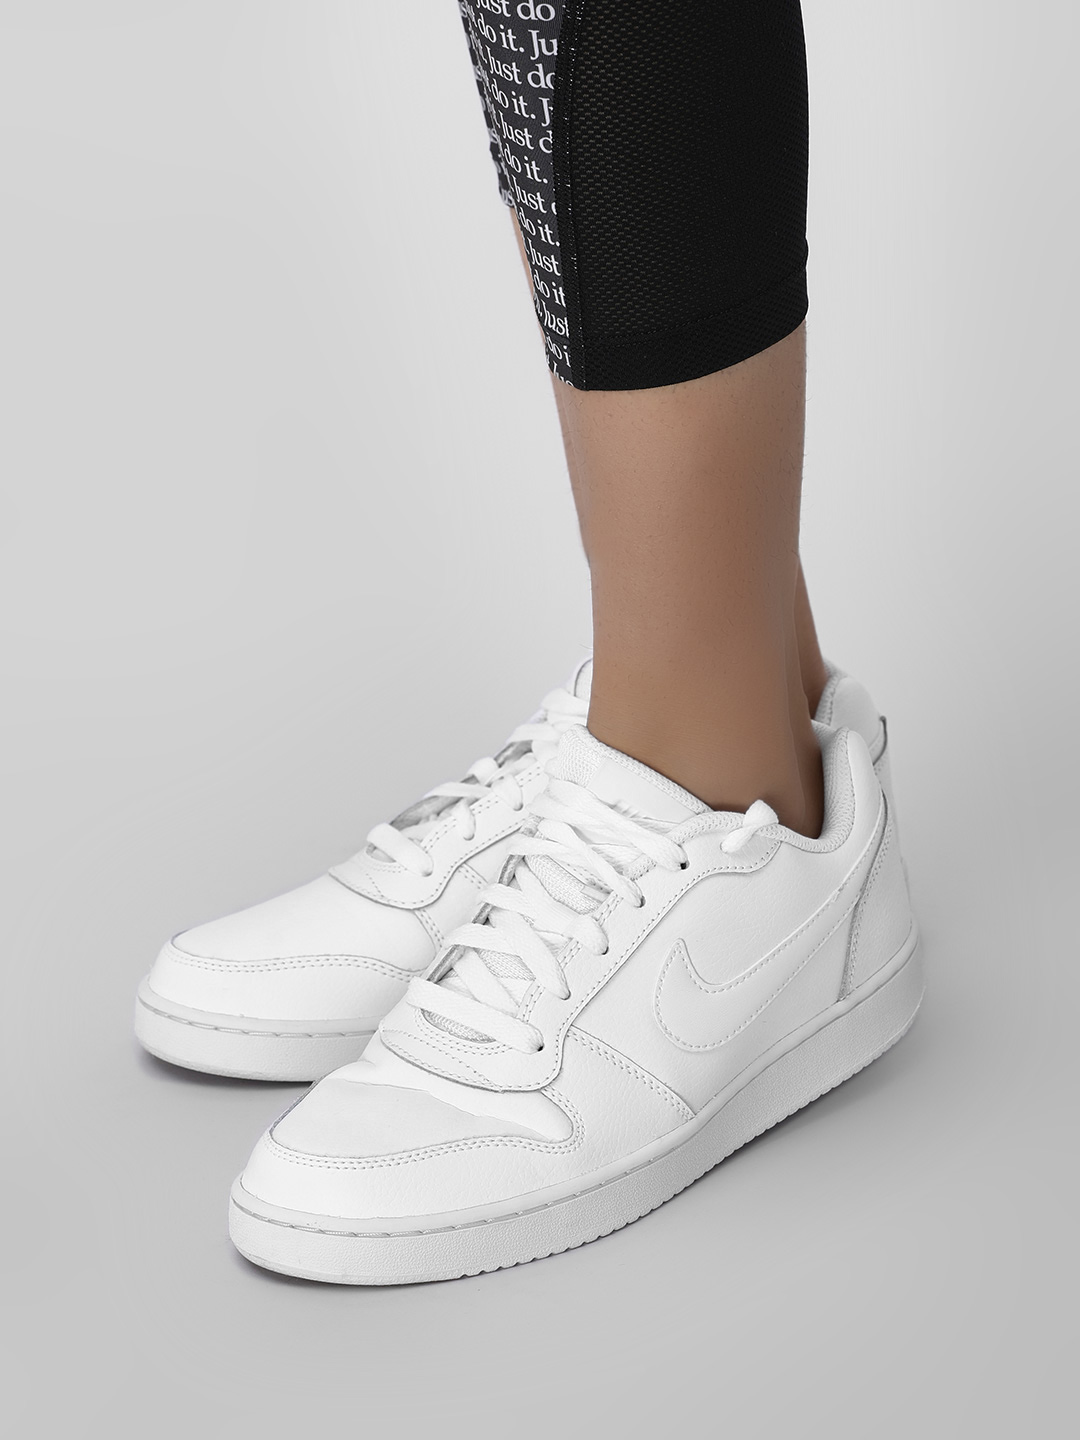 Nike White Ebernon Low Sneakers 1